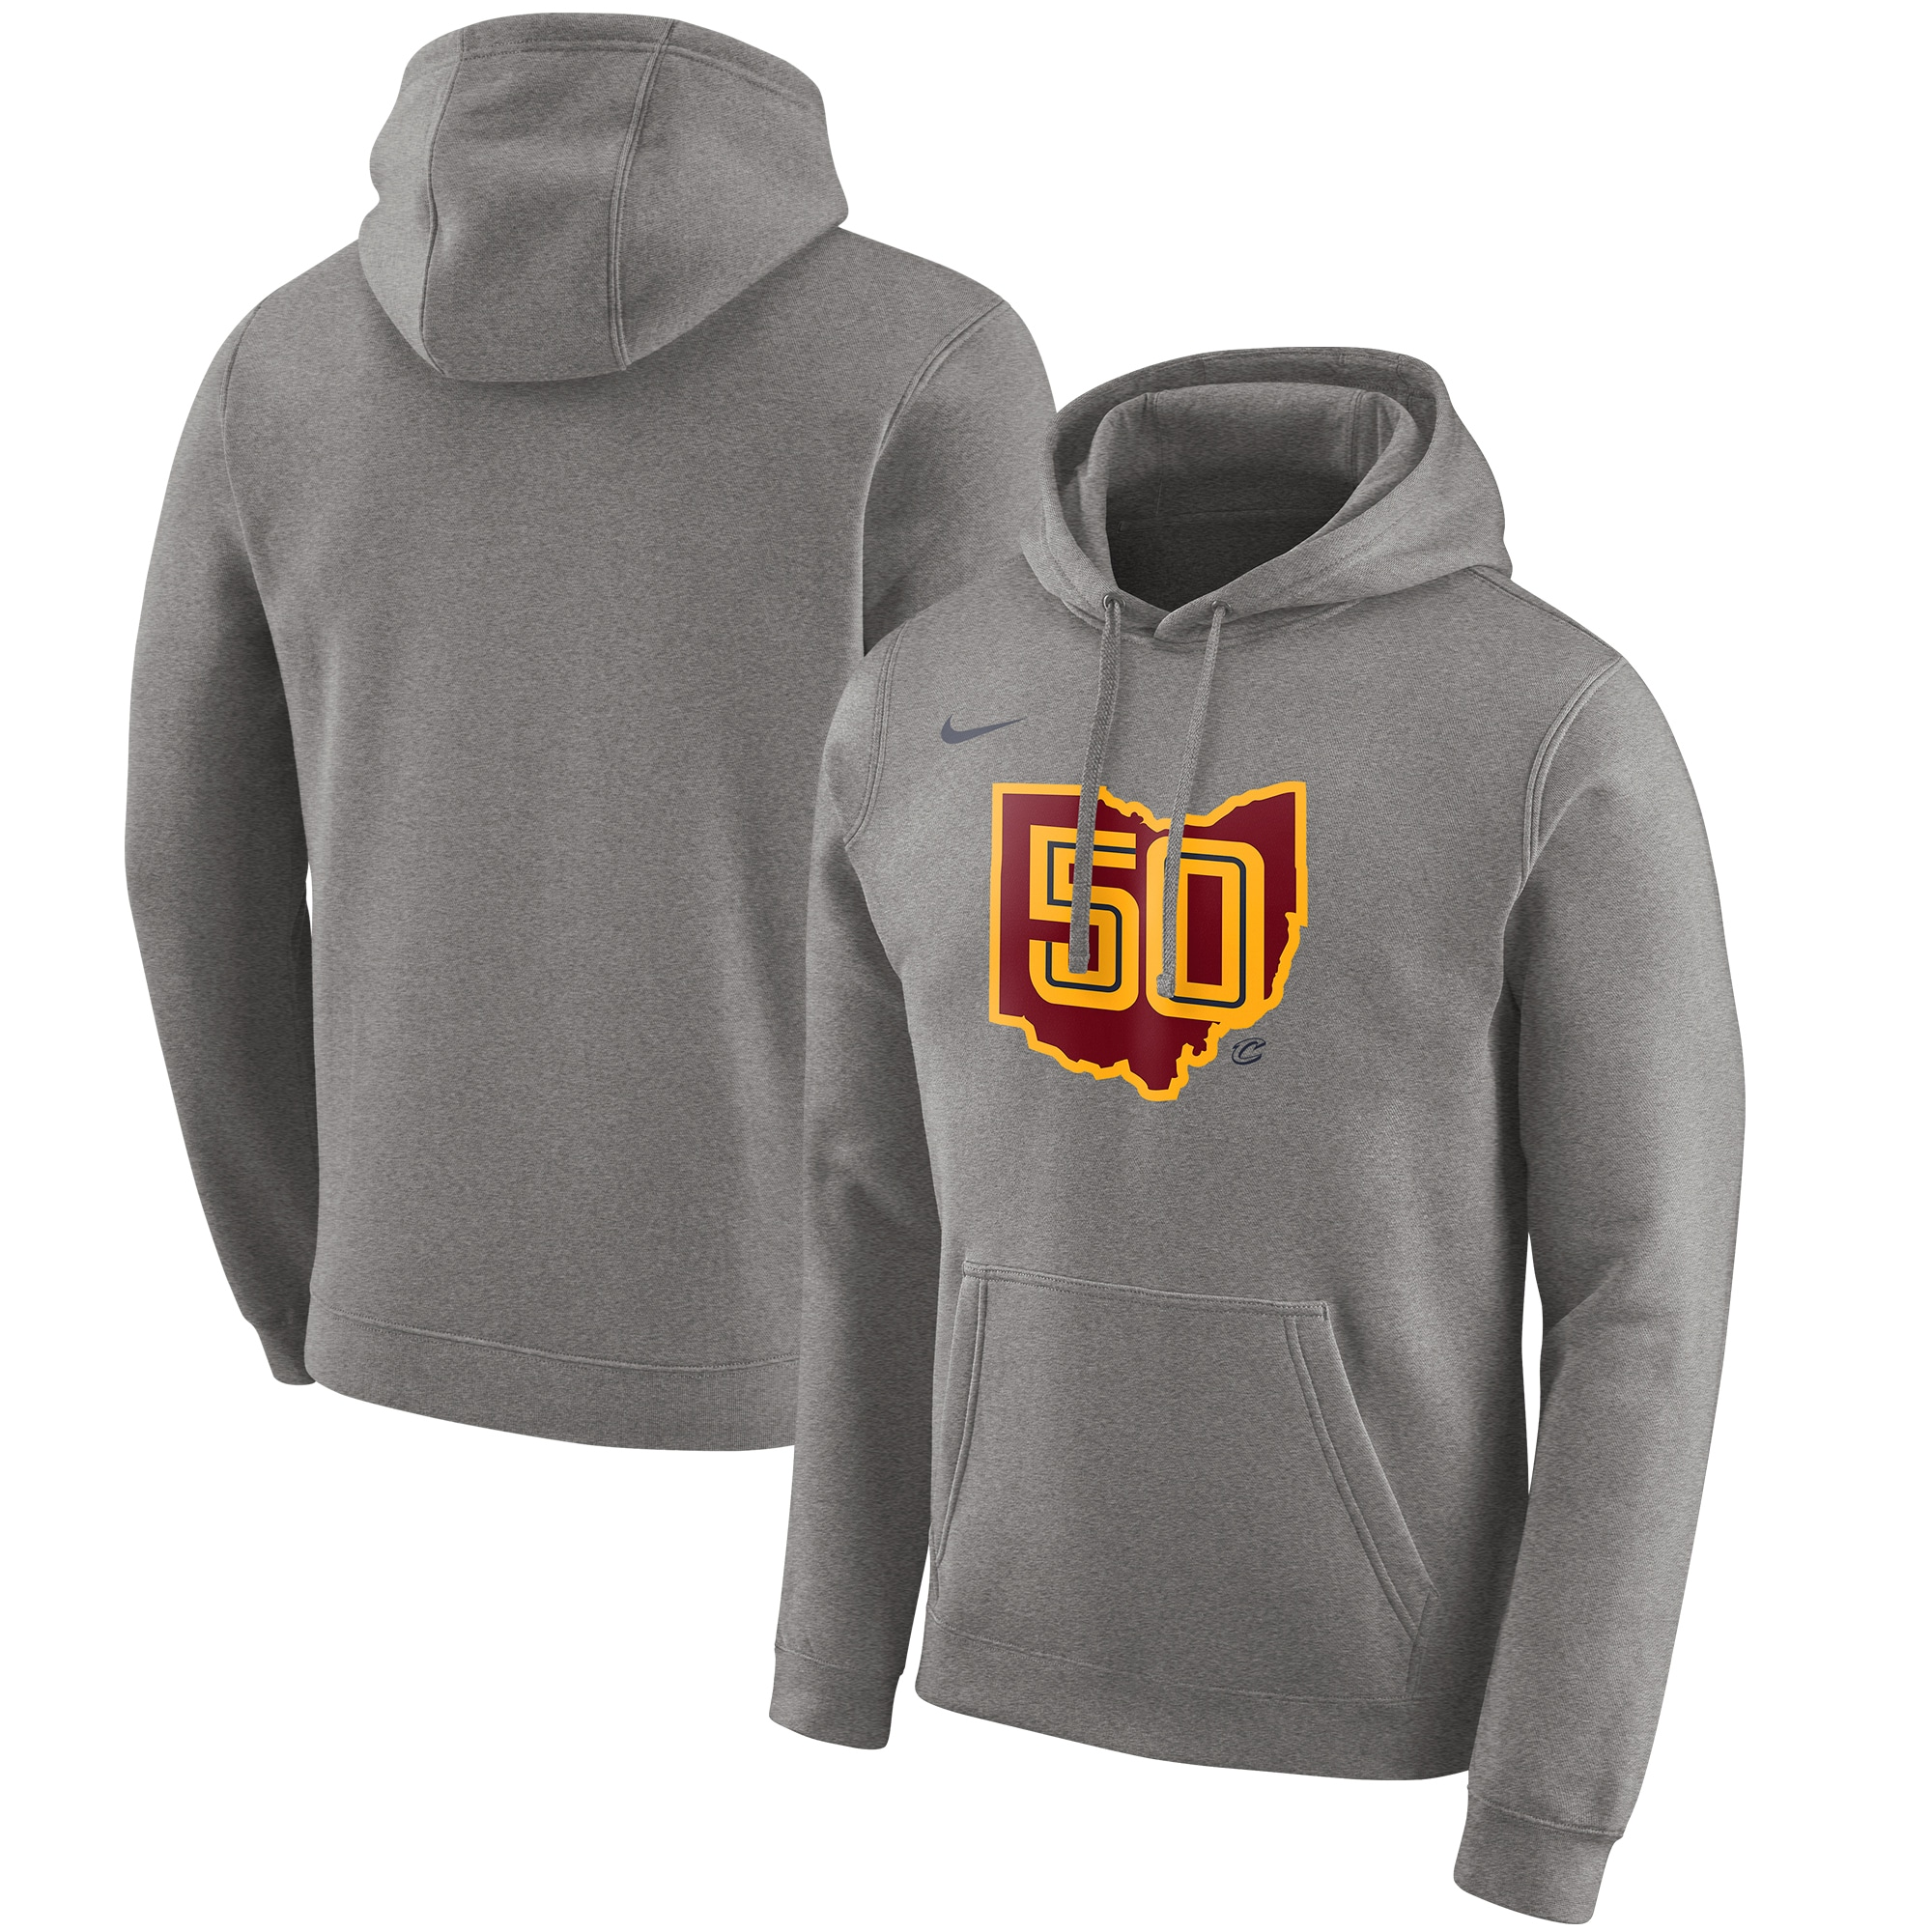 Cleveland Cavaliers Nike 2019/20 City Edition Club Pullover Hoodie - Heather Gray